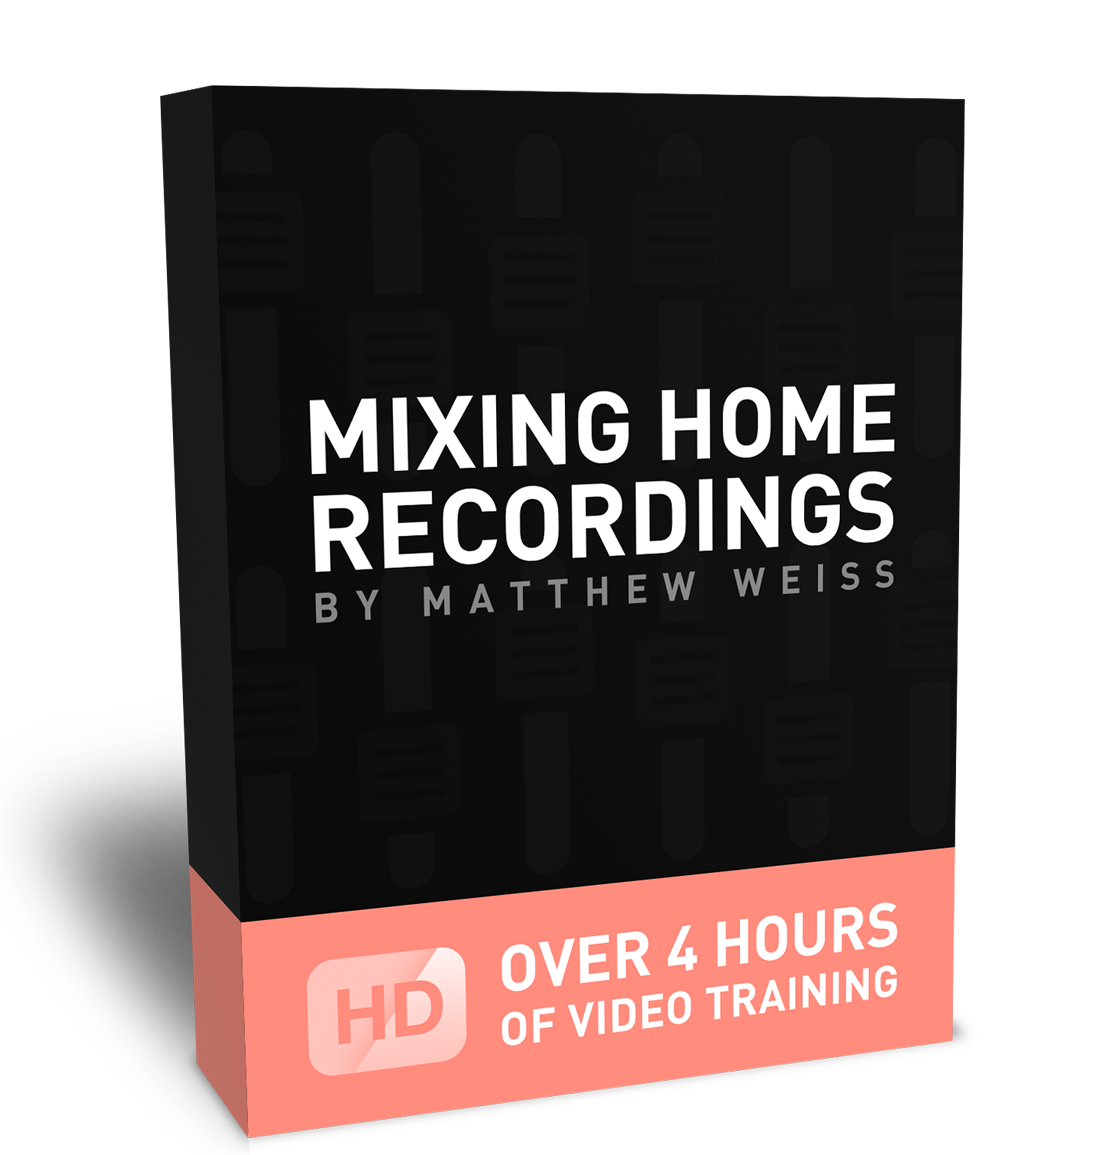 Mixing Home Recording product box